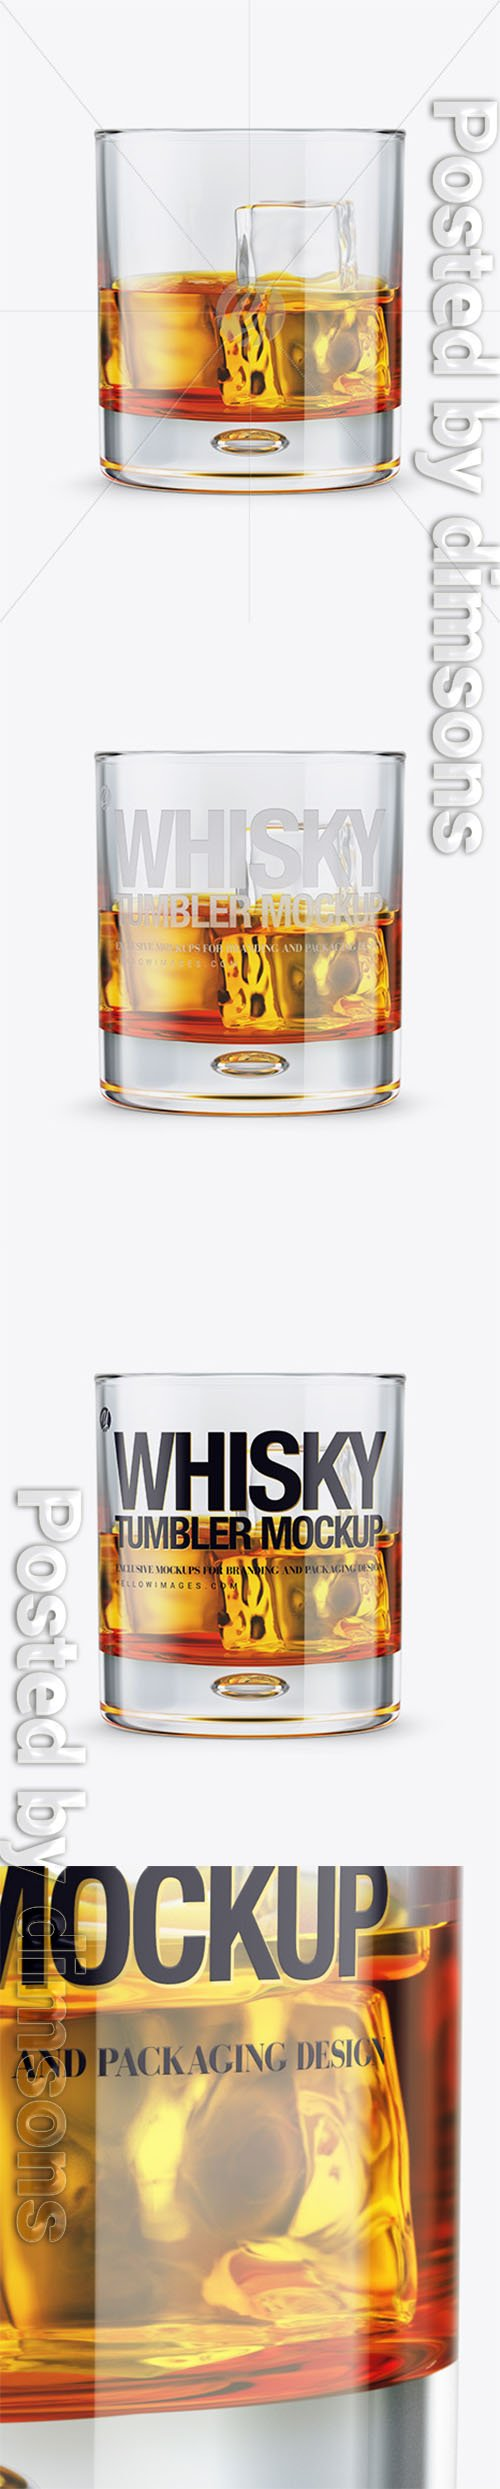 Whisky Tumbler Glass w/ Ice Cubes Mockup 22459 TIF